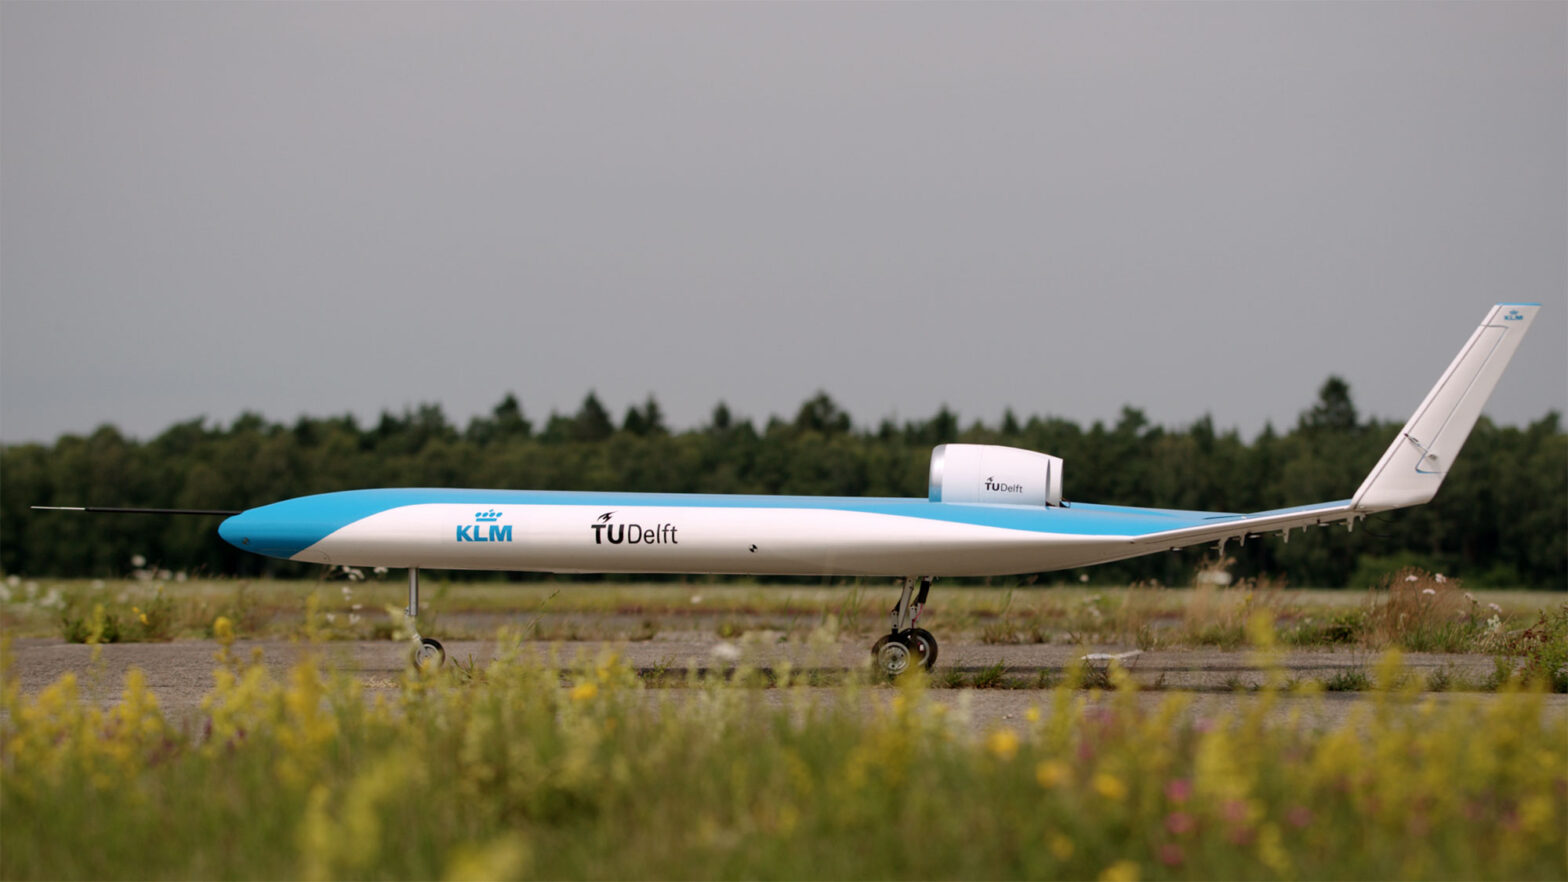 KLM and TU-Delft Flying the Model Flying-V